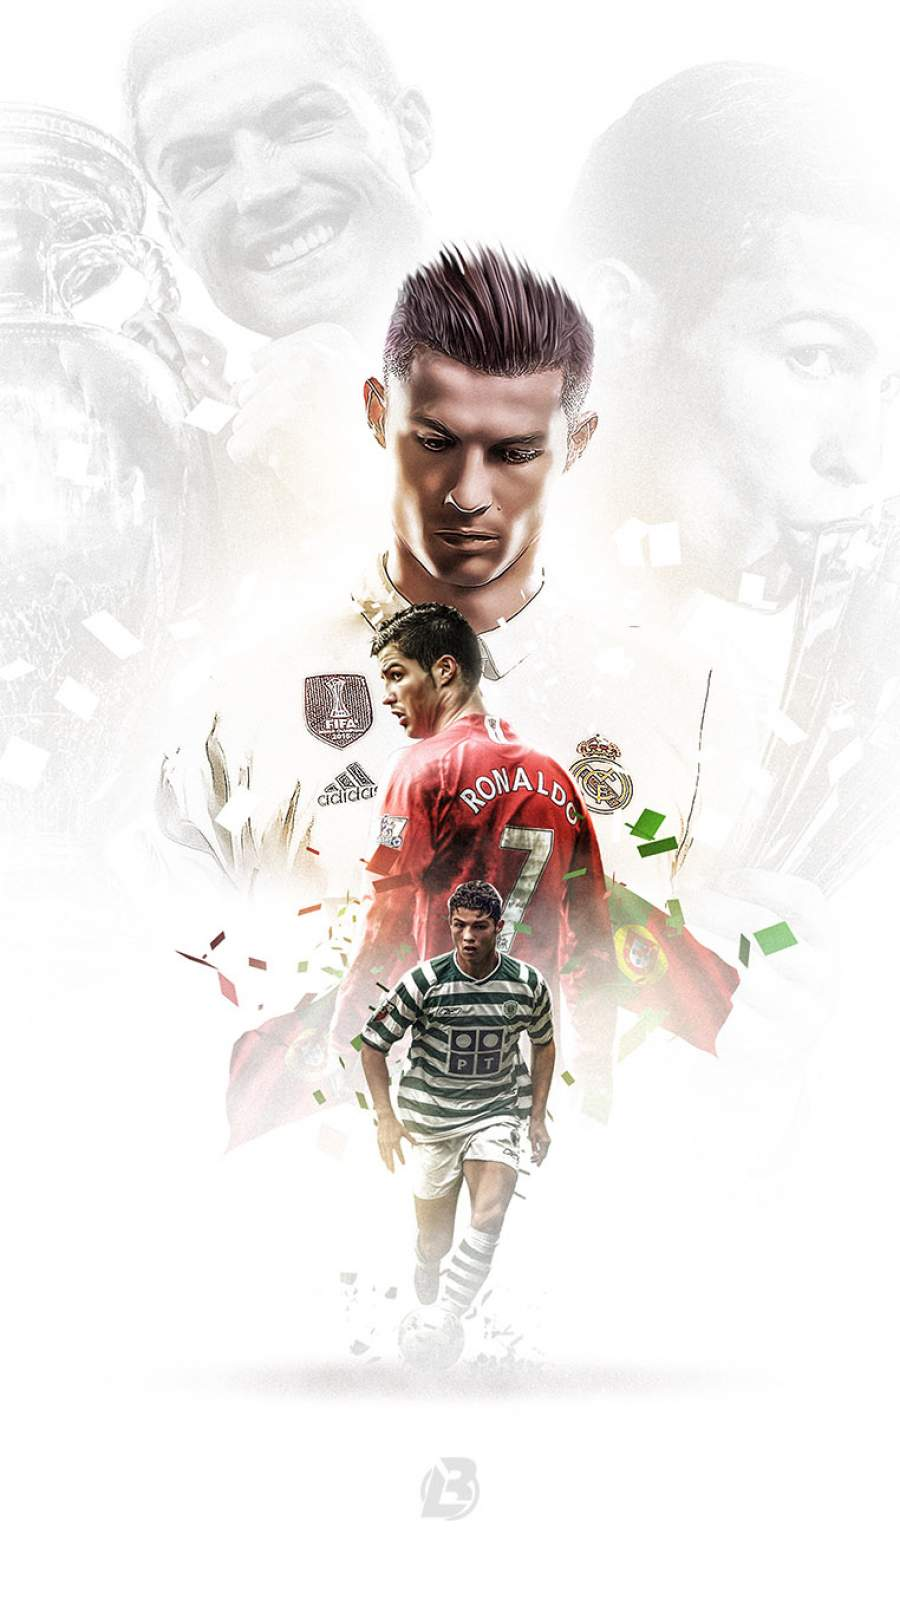 Ronaldo Best Footballer iPhone Wallpaper